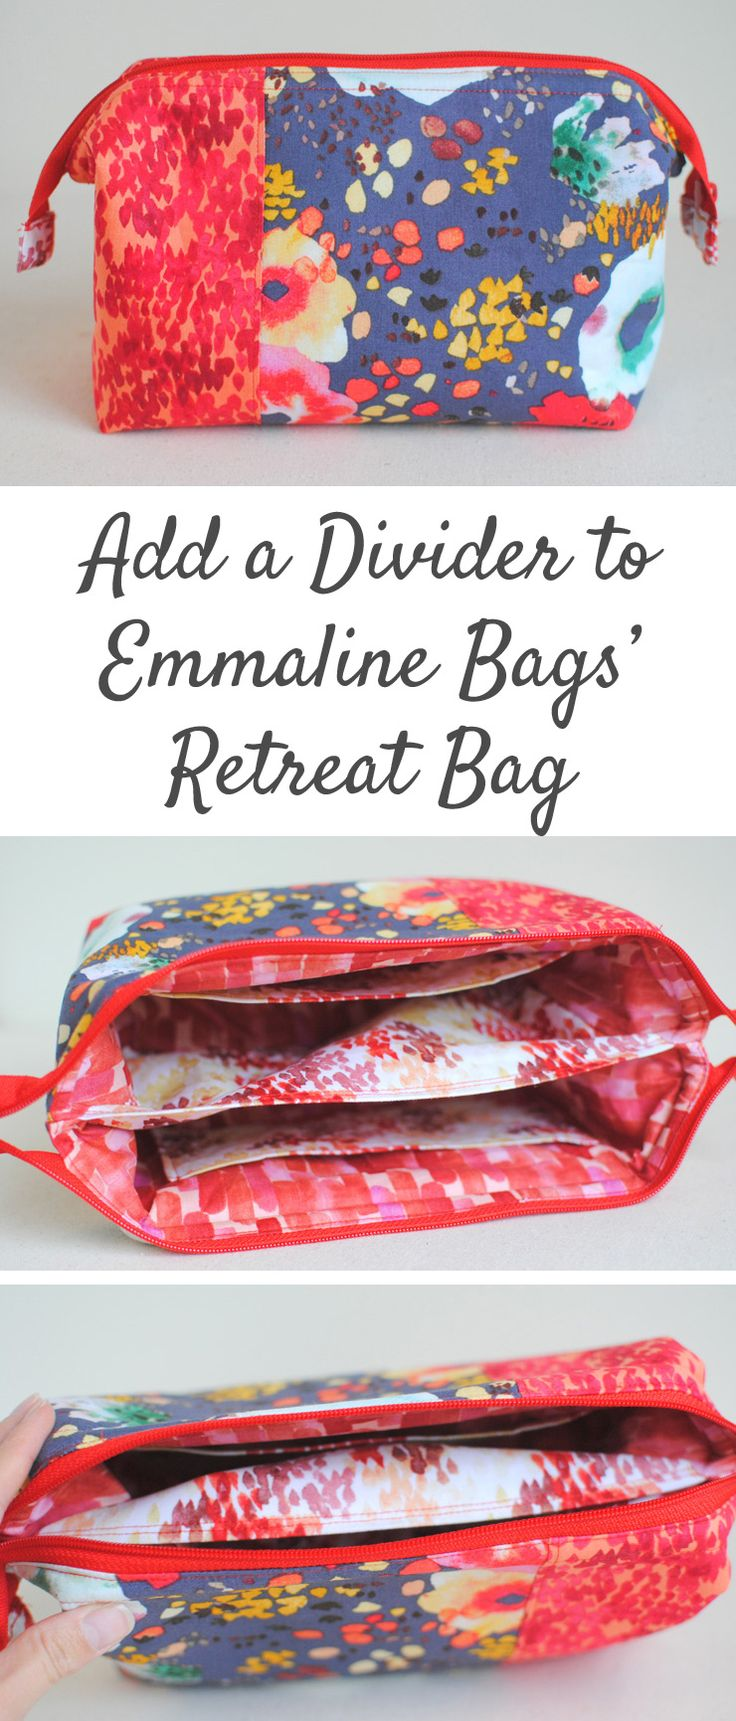 Clover & Violet — Add a Divider to Emmaline Bags' Retreat Bag {Tutorial}